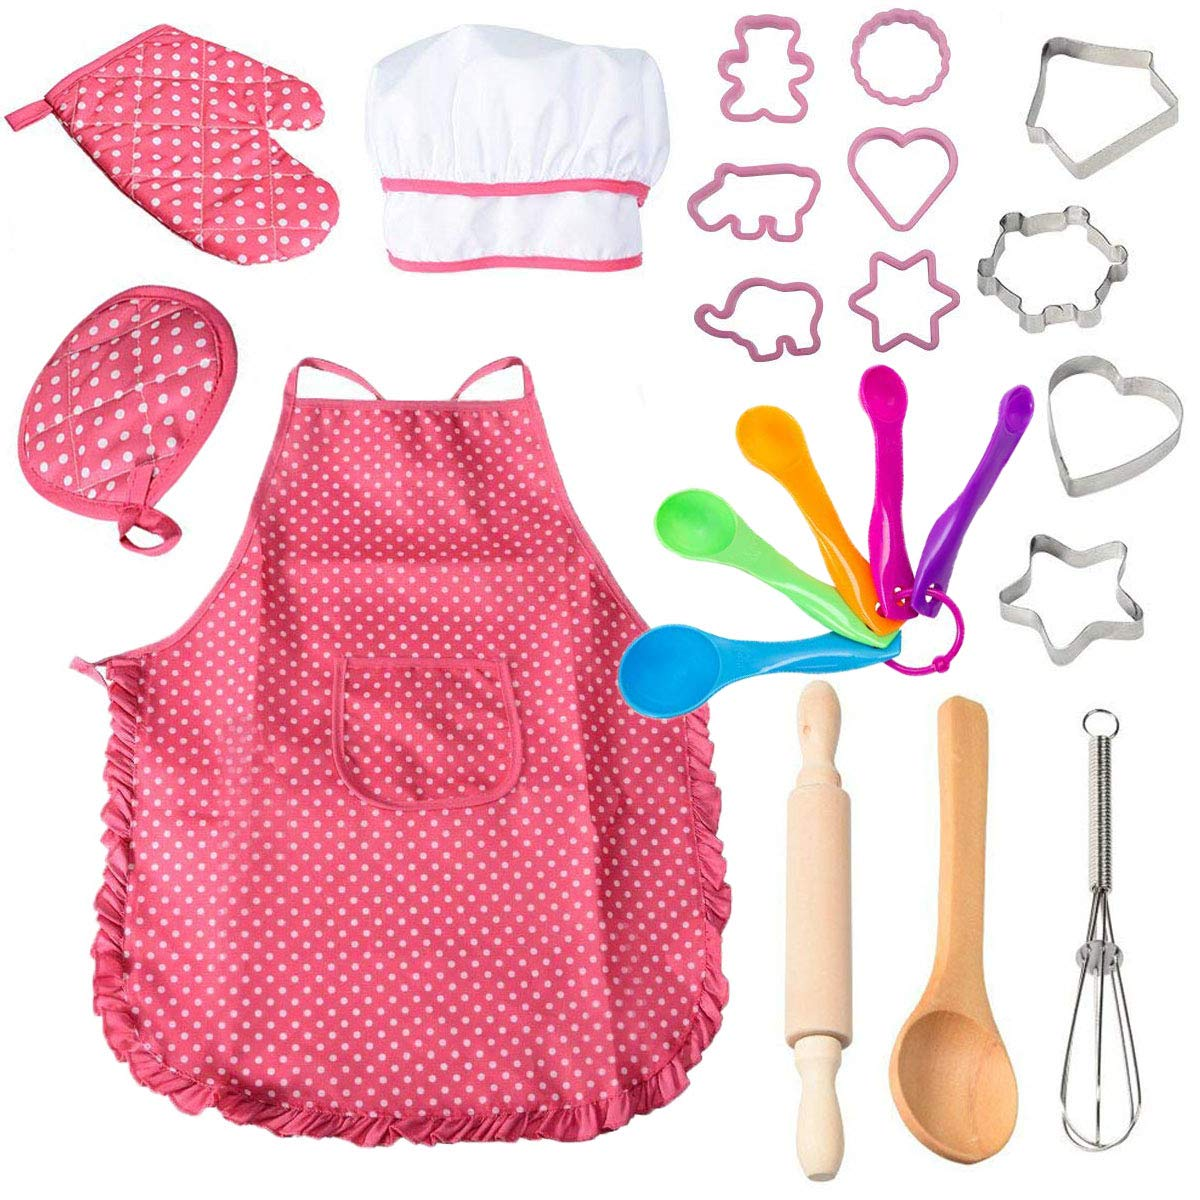 22 Pcs Kids Cooking and Baking Set - Includes Apron for Girls,Chef Hat,Oven Mitt and Other Cooking Utensils for Toddler Chef Career Role Play,Girls Dress up Pretend Play Gift